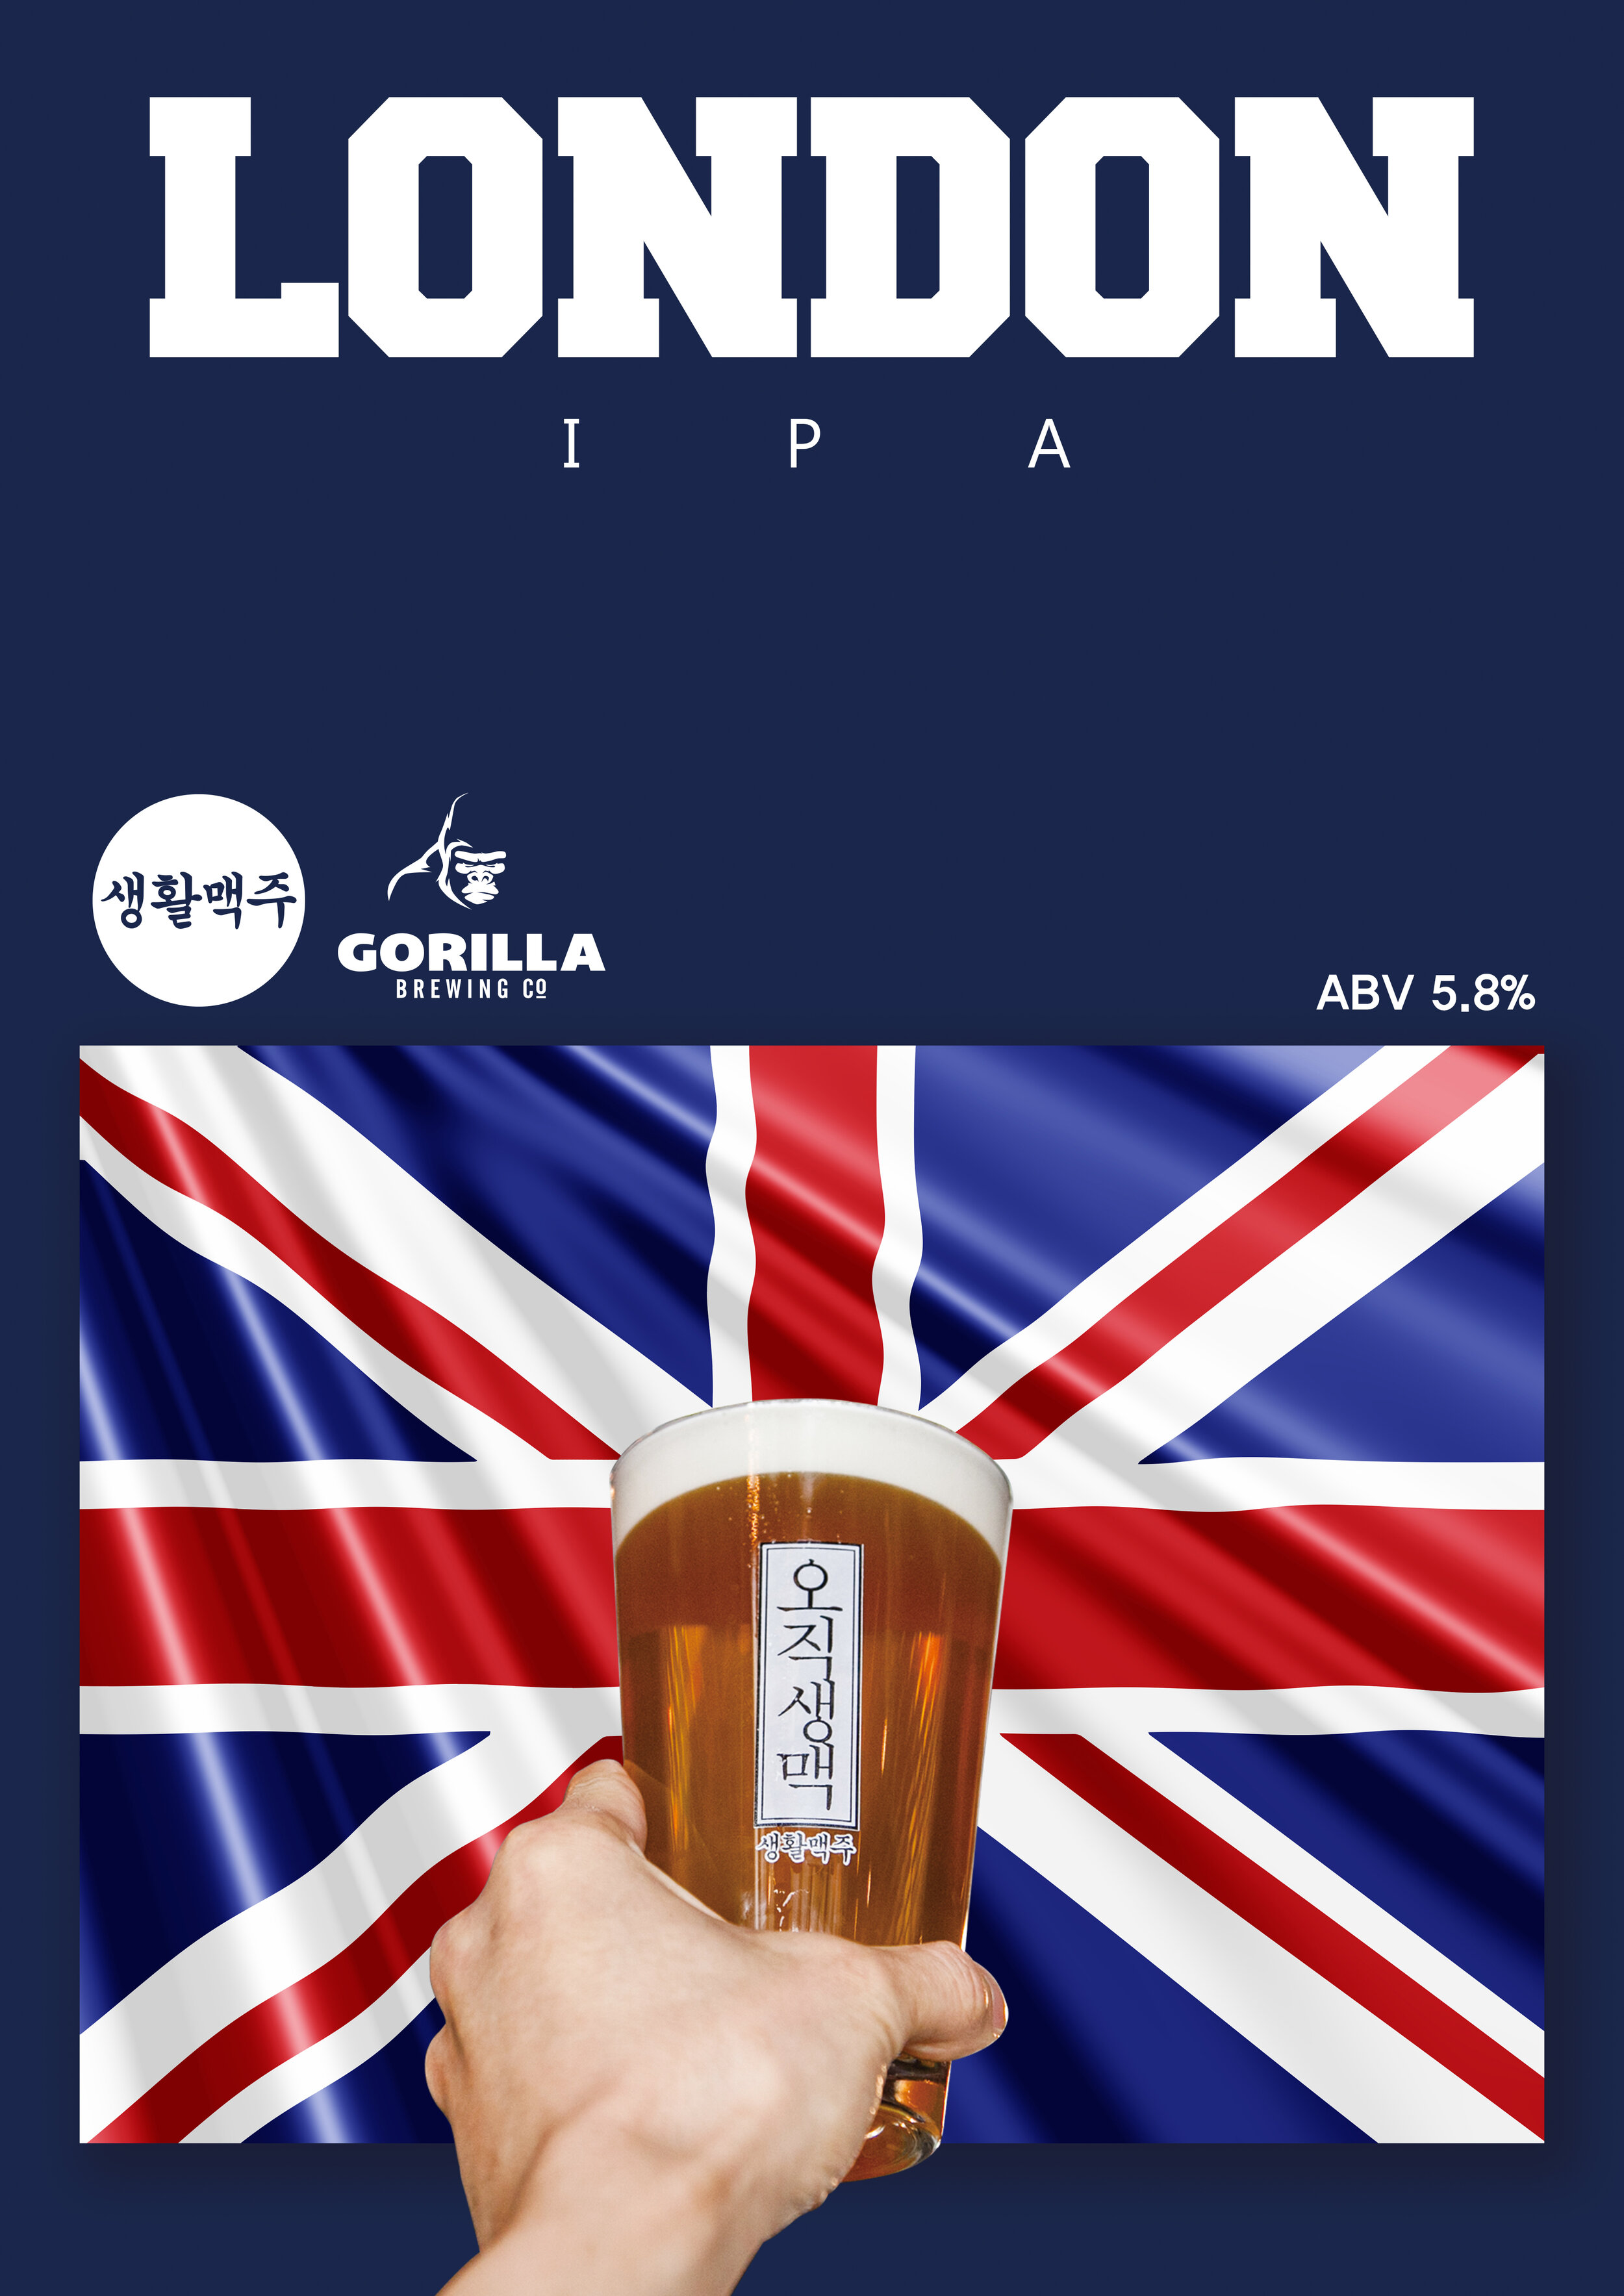 LONDON IPA - 런던 아이피에이abv 5.8% ibu 58A classic American IPA. A pleasant piney and fruity aroma, citrus and smooth tropical fruits on the taste buds, finished with a welcoming bitterness that American IPAs are known for.런던현지에서재해석하여양조하는아메리칸스타일의아이피에이를부산고릴라브루잉에서영국인해드브루어가재현해낸맥주입니다. 앰버의빛깔로, 쌉쌀함과부드러운과일향이일품인균형잡힌아이피에이입니다.Wholesale: unavailableExclusive to Daily Beer, Korea